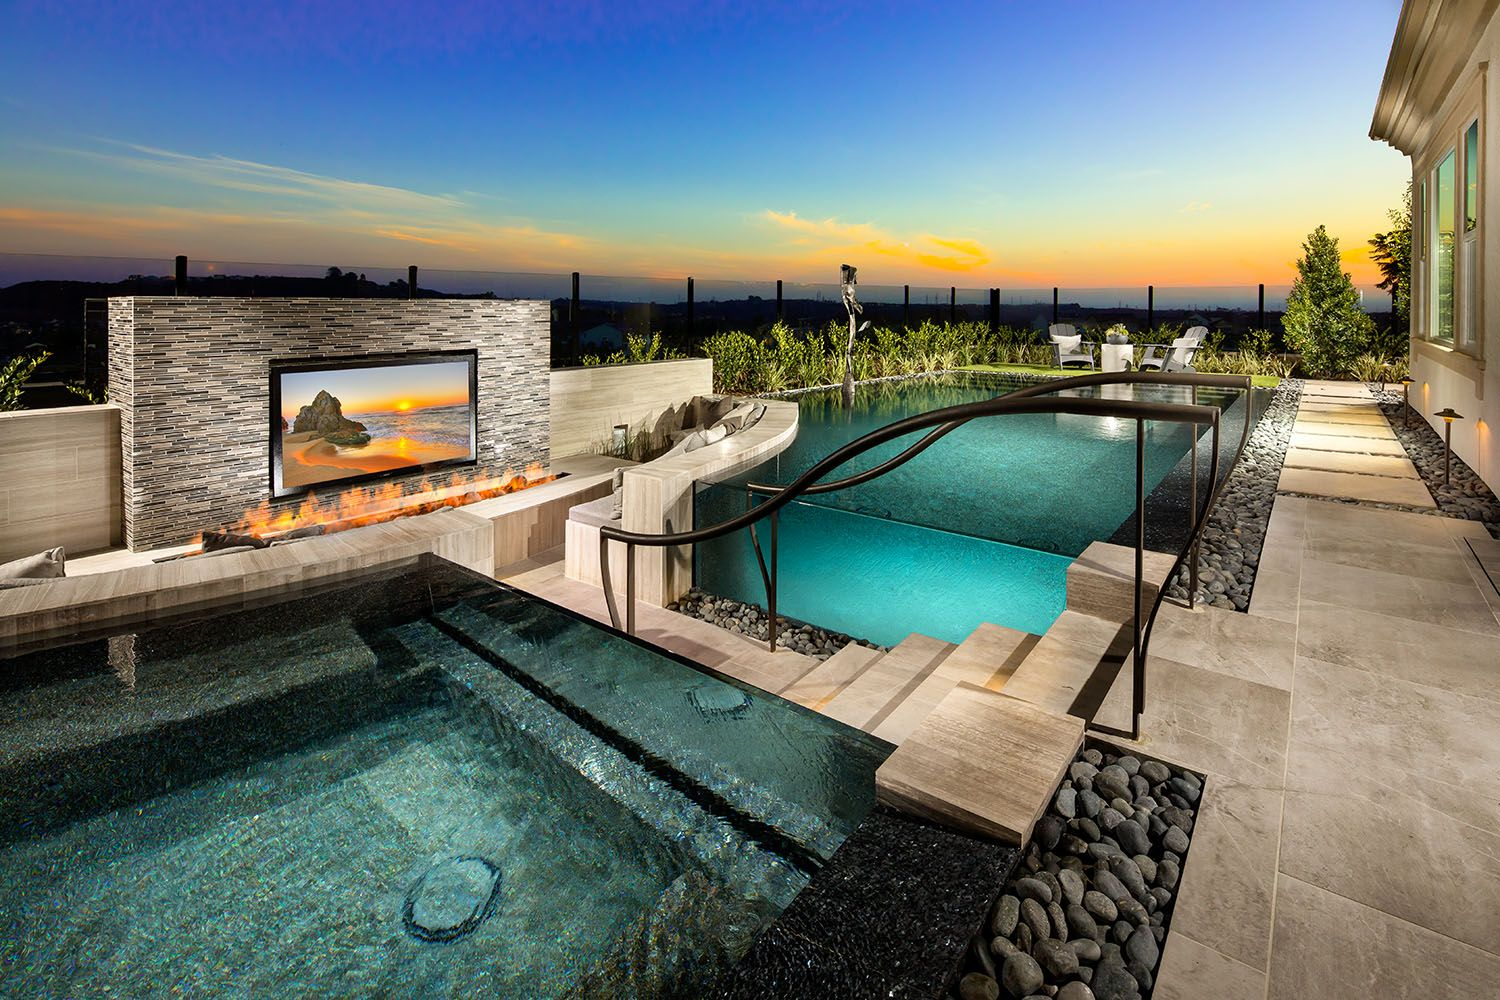 Perfect example of a backyard oasis. Start building yours ...